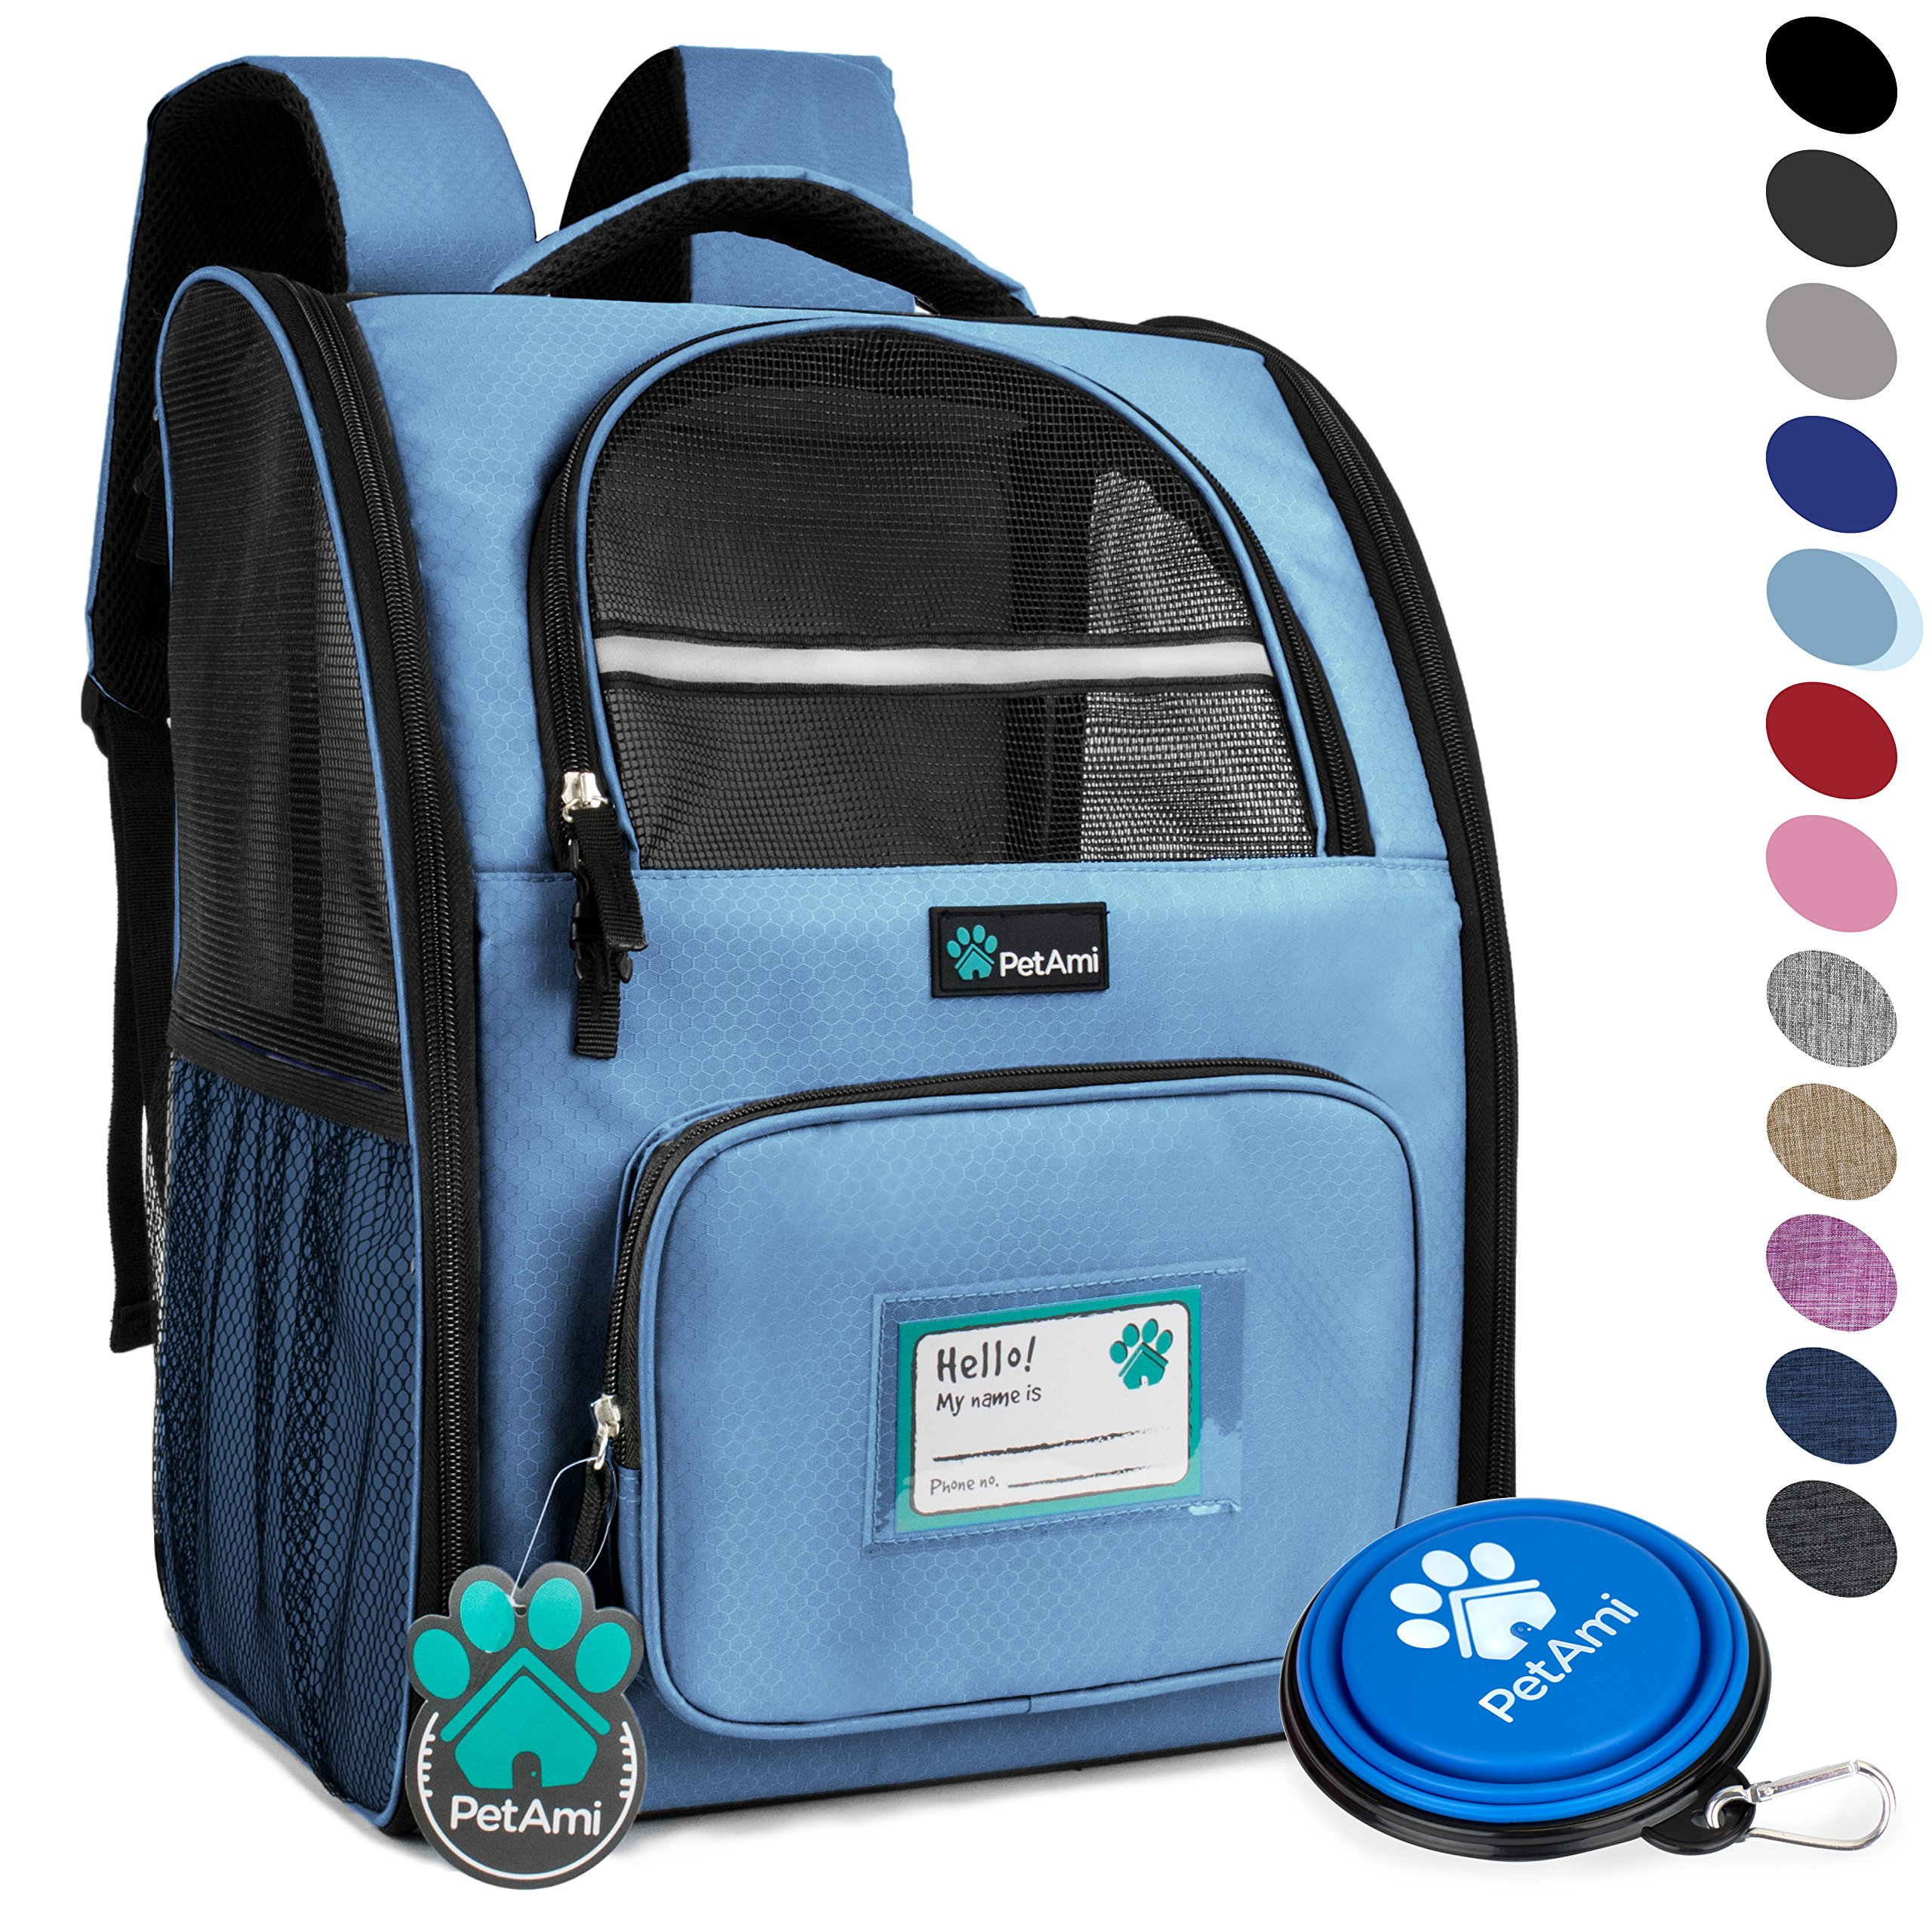 PetAmi Deluxe Pet Carrier Backpack for Small Cats and Dogs, Puppies | Ventilated Design, Two-Sided Entry, Safety Features and Cushion Back Support | for Travel, Hiking, Outdoor Use (Light Blue) by PetAmi